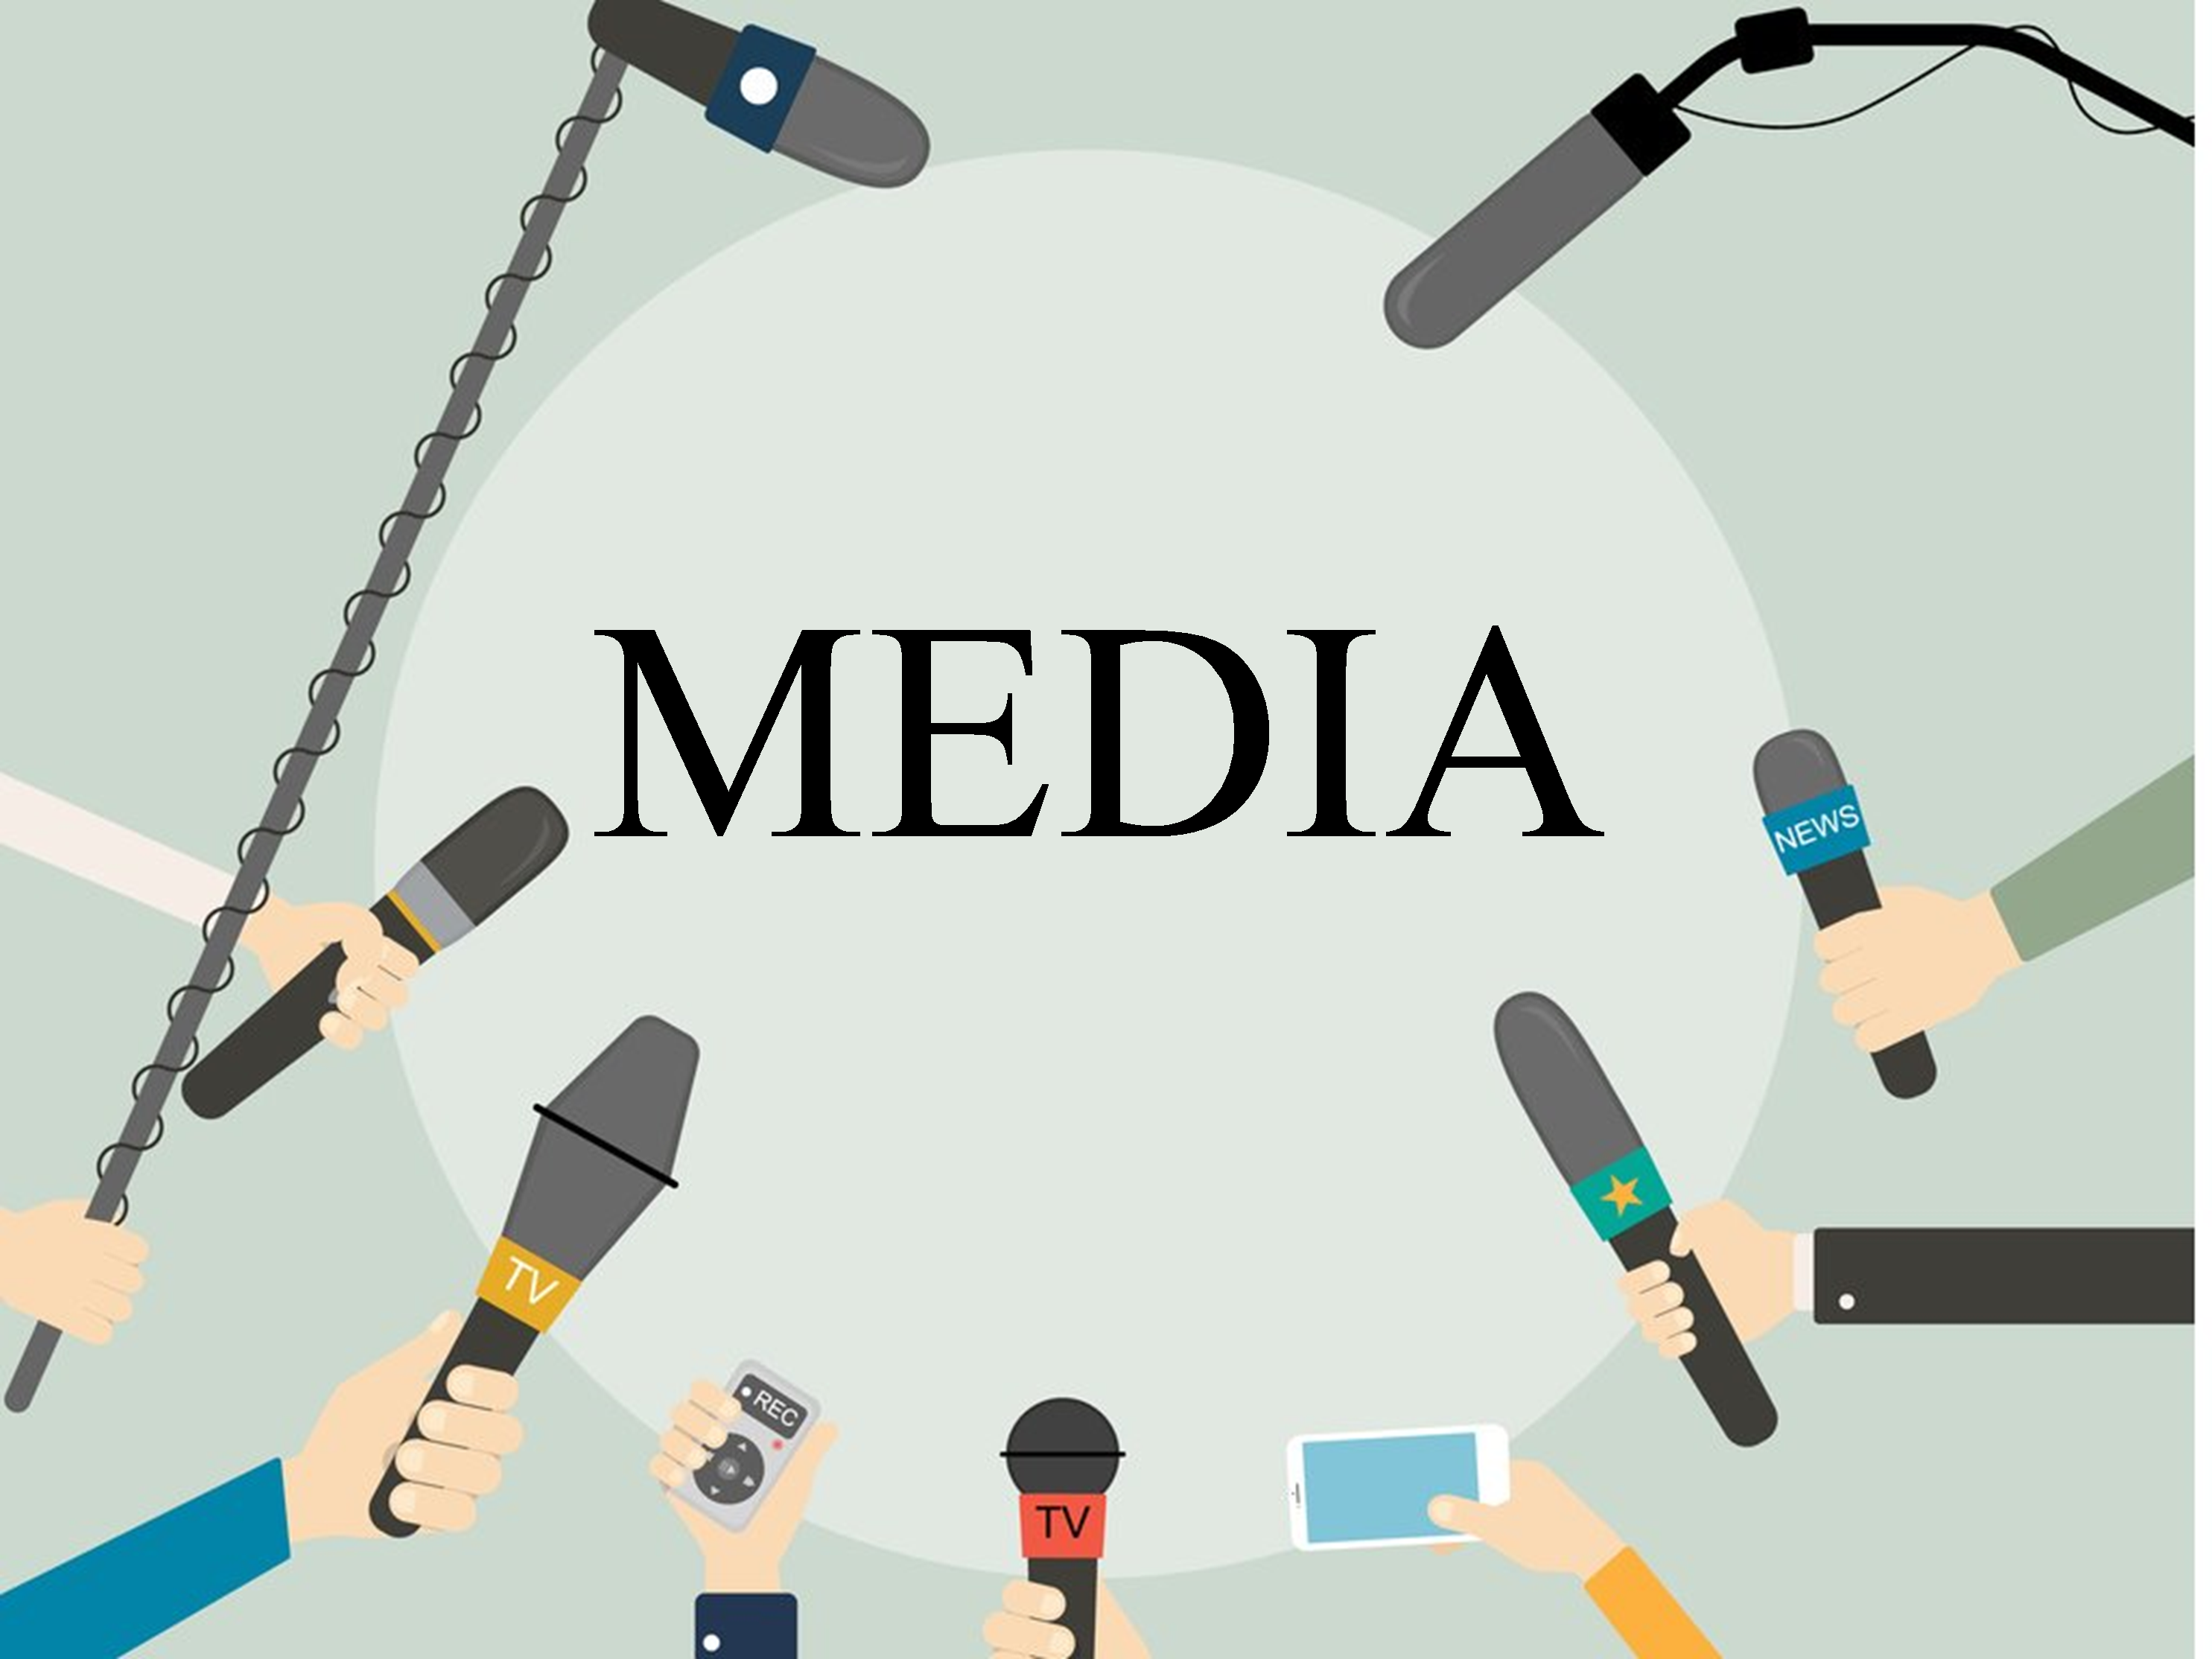 Media, image of hands holding microphones and cell phones.